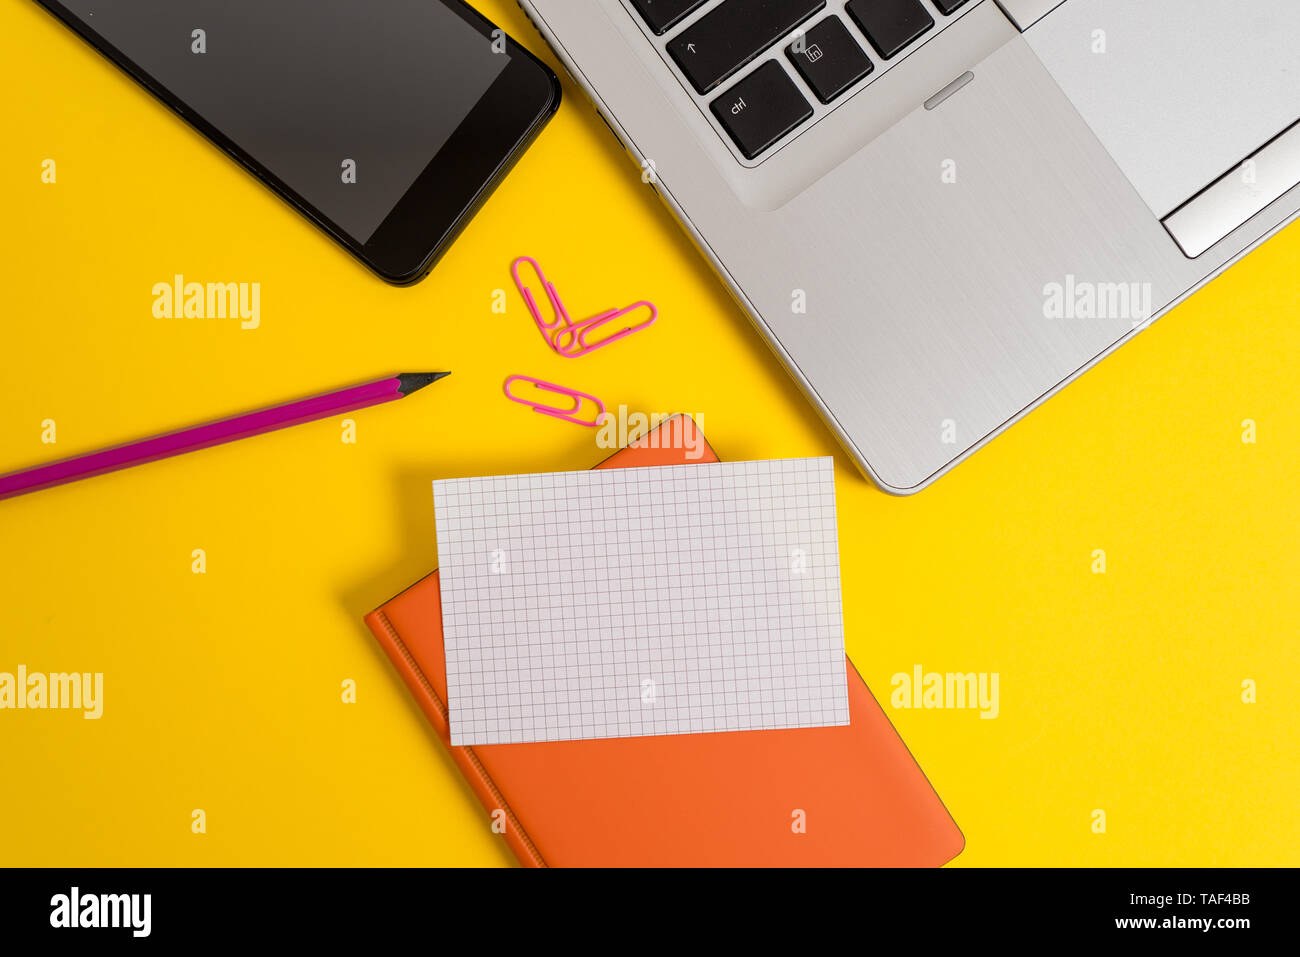 Laptop smartphone clips pencil paper sheet notebook colored background - Stock Image